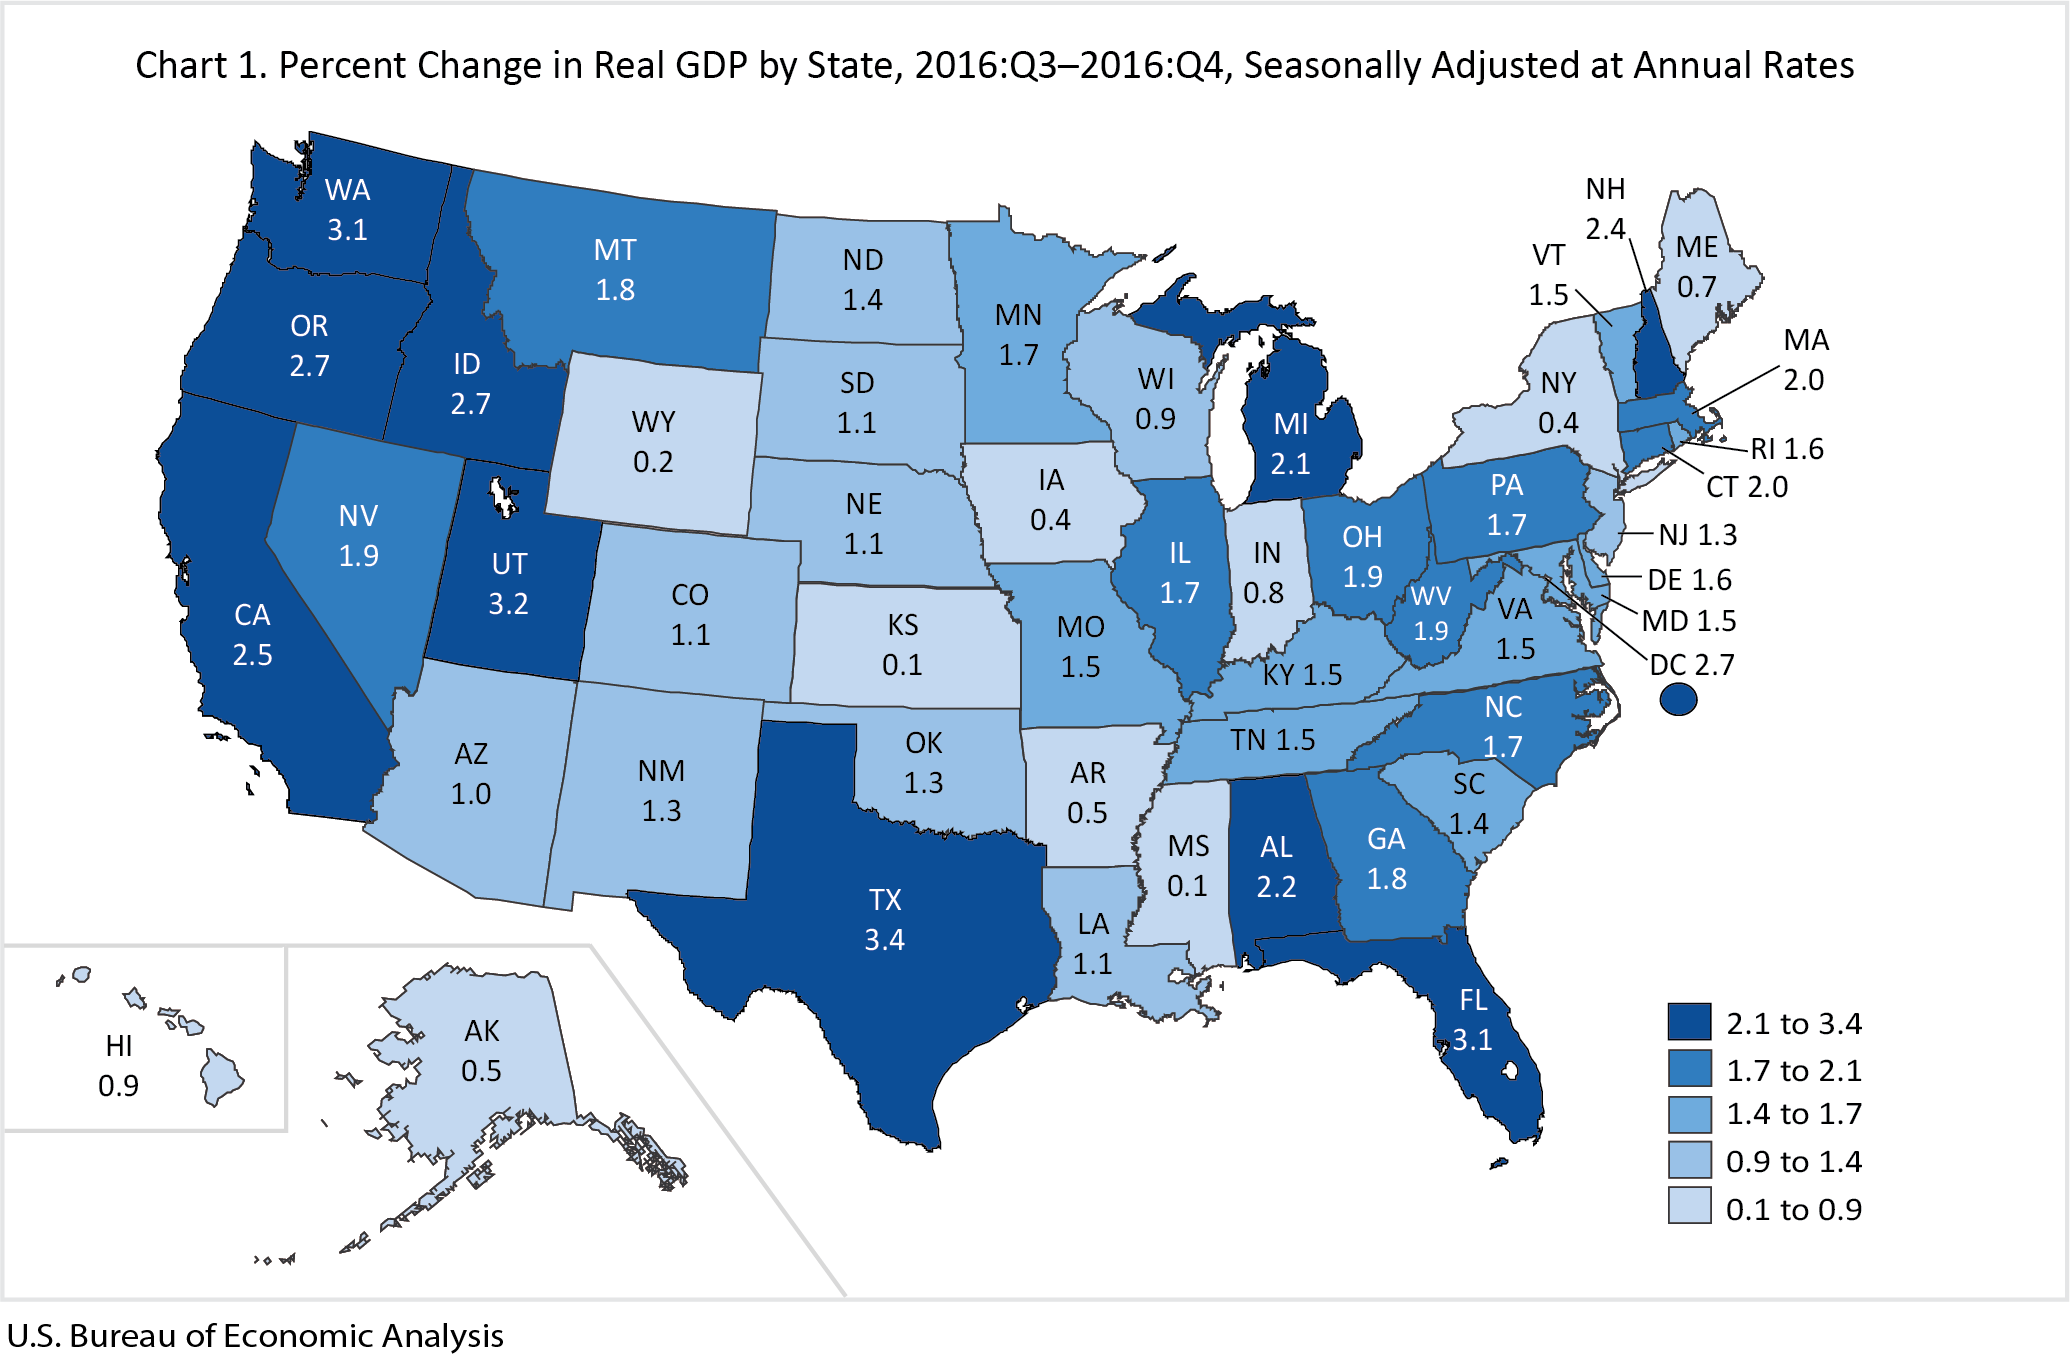 Finance and Insurance Led Growth Across States in the ...